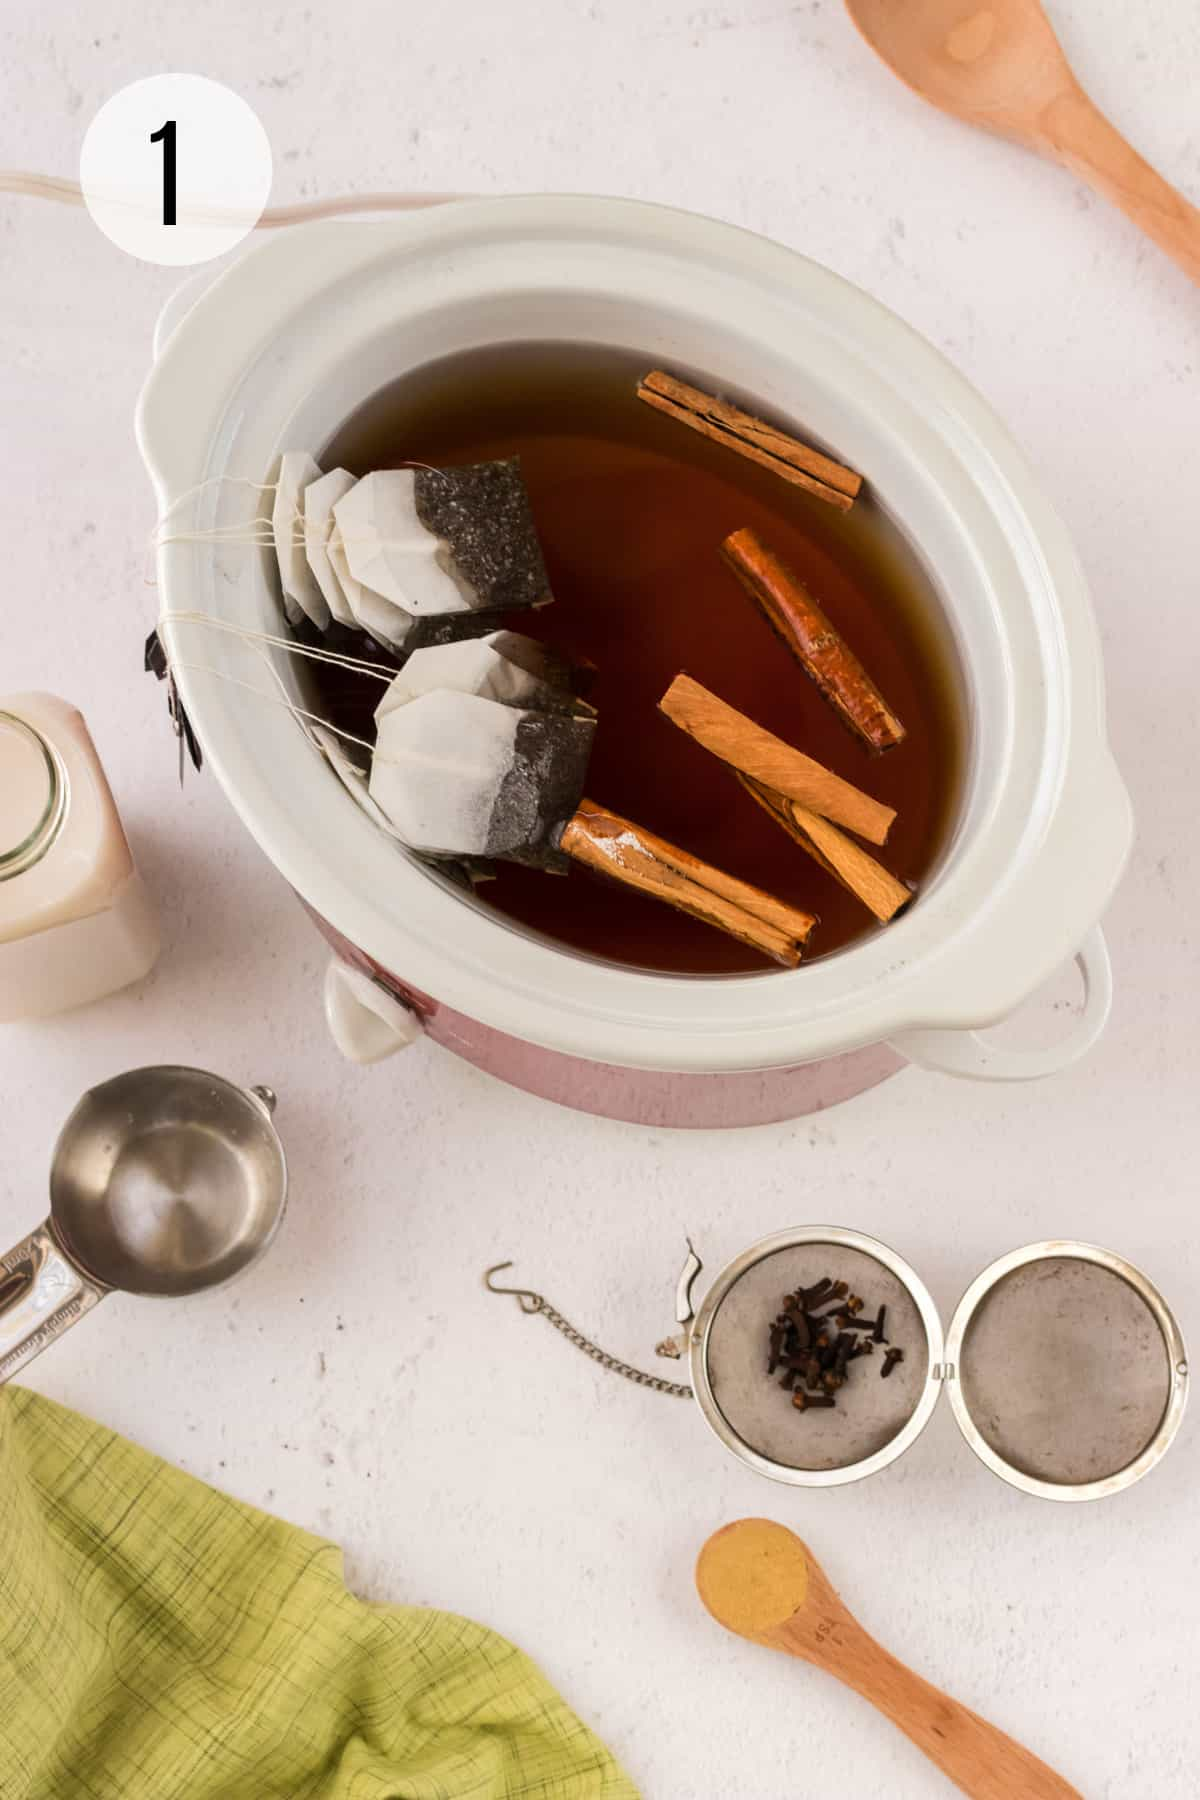 Slow cooker with tea bags and cinnamon sticks with mesh tea ball of cloves in lower right right and measuring cup and milk to left.